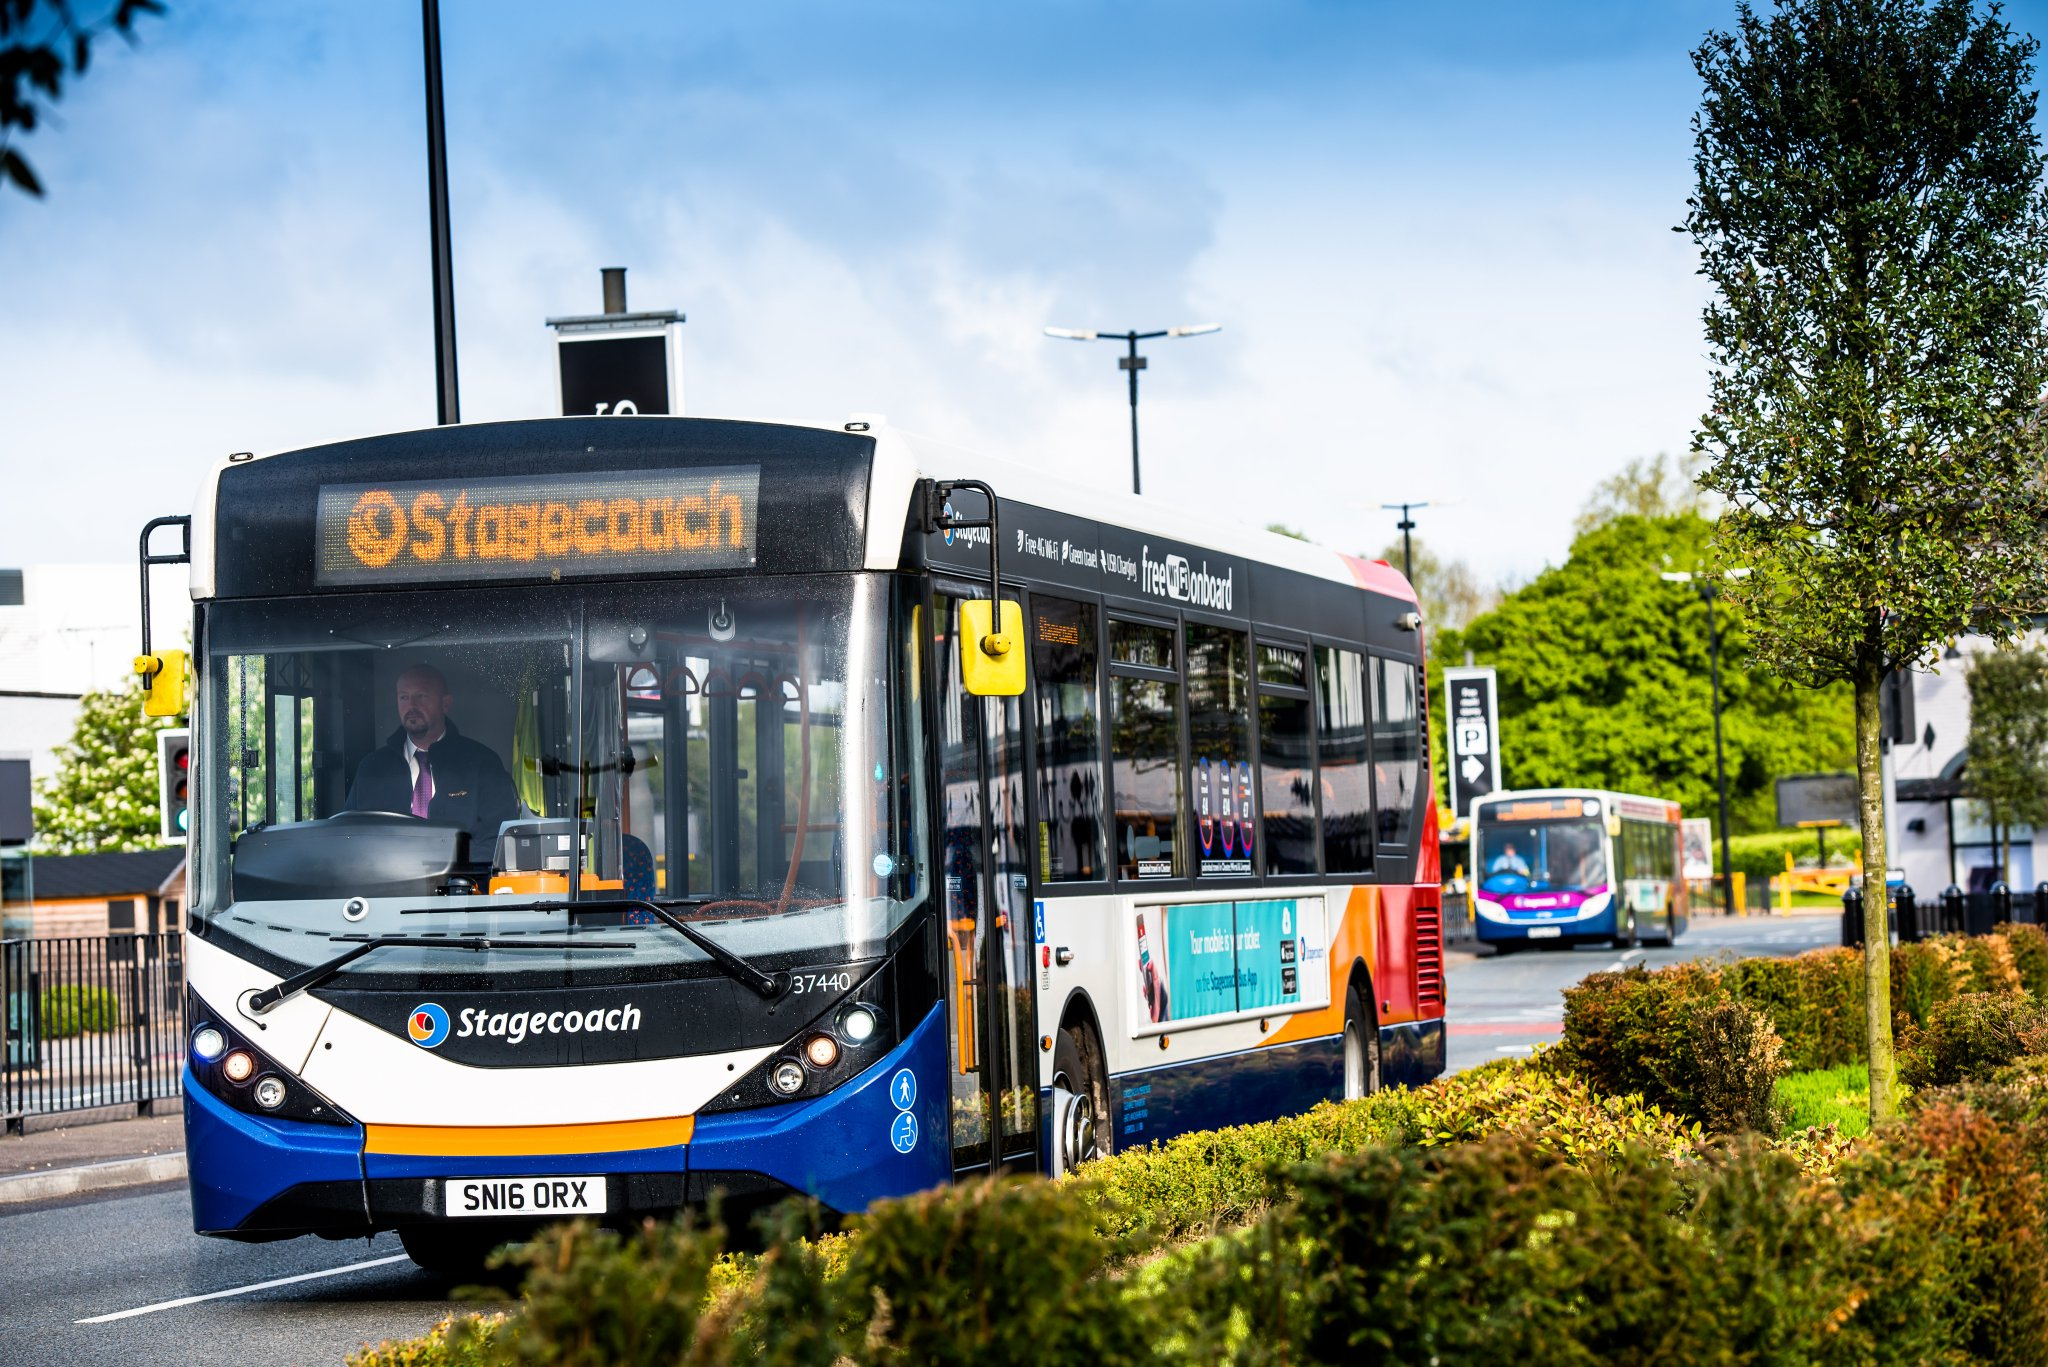 UK's first full-sized driverless bus uses Bristol tech